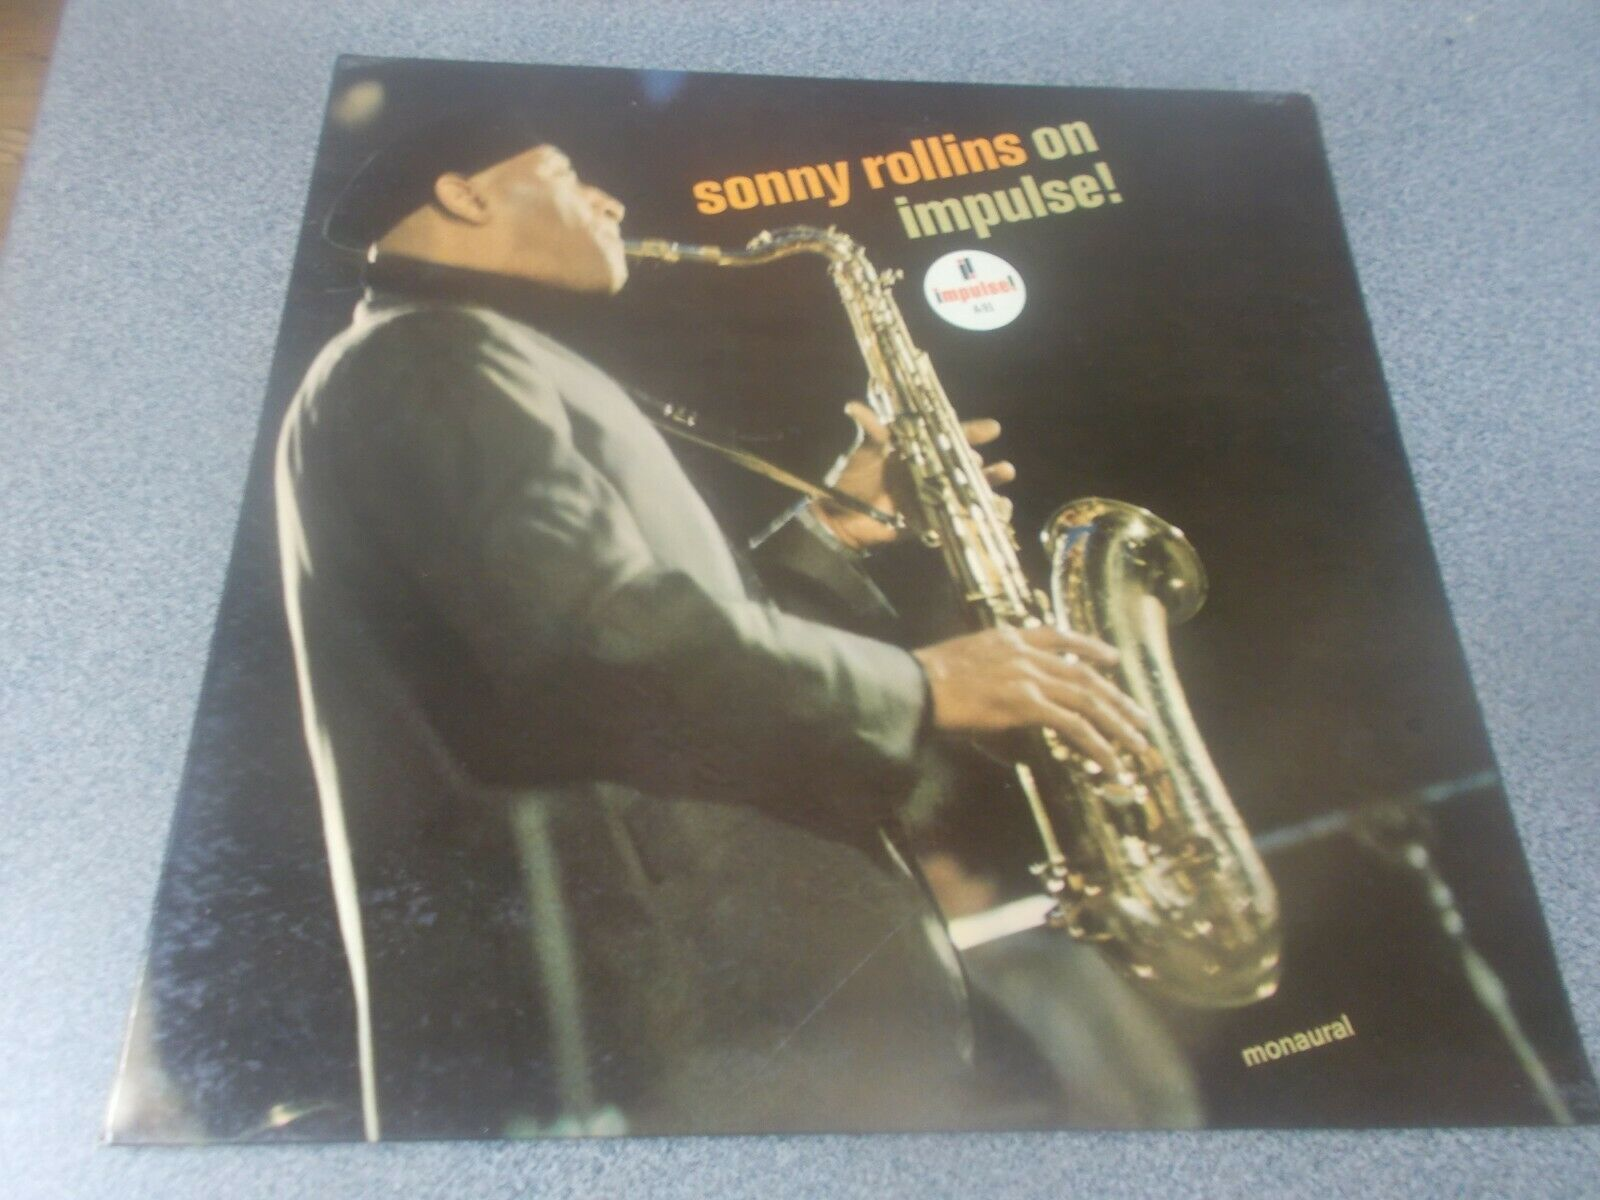 Sonny Rollins On Impulse  beautiful white label promo monaural Van Gelder